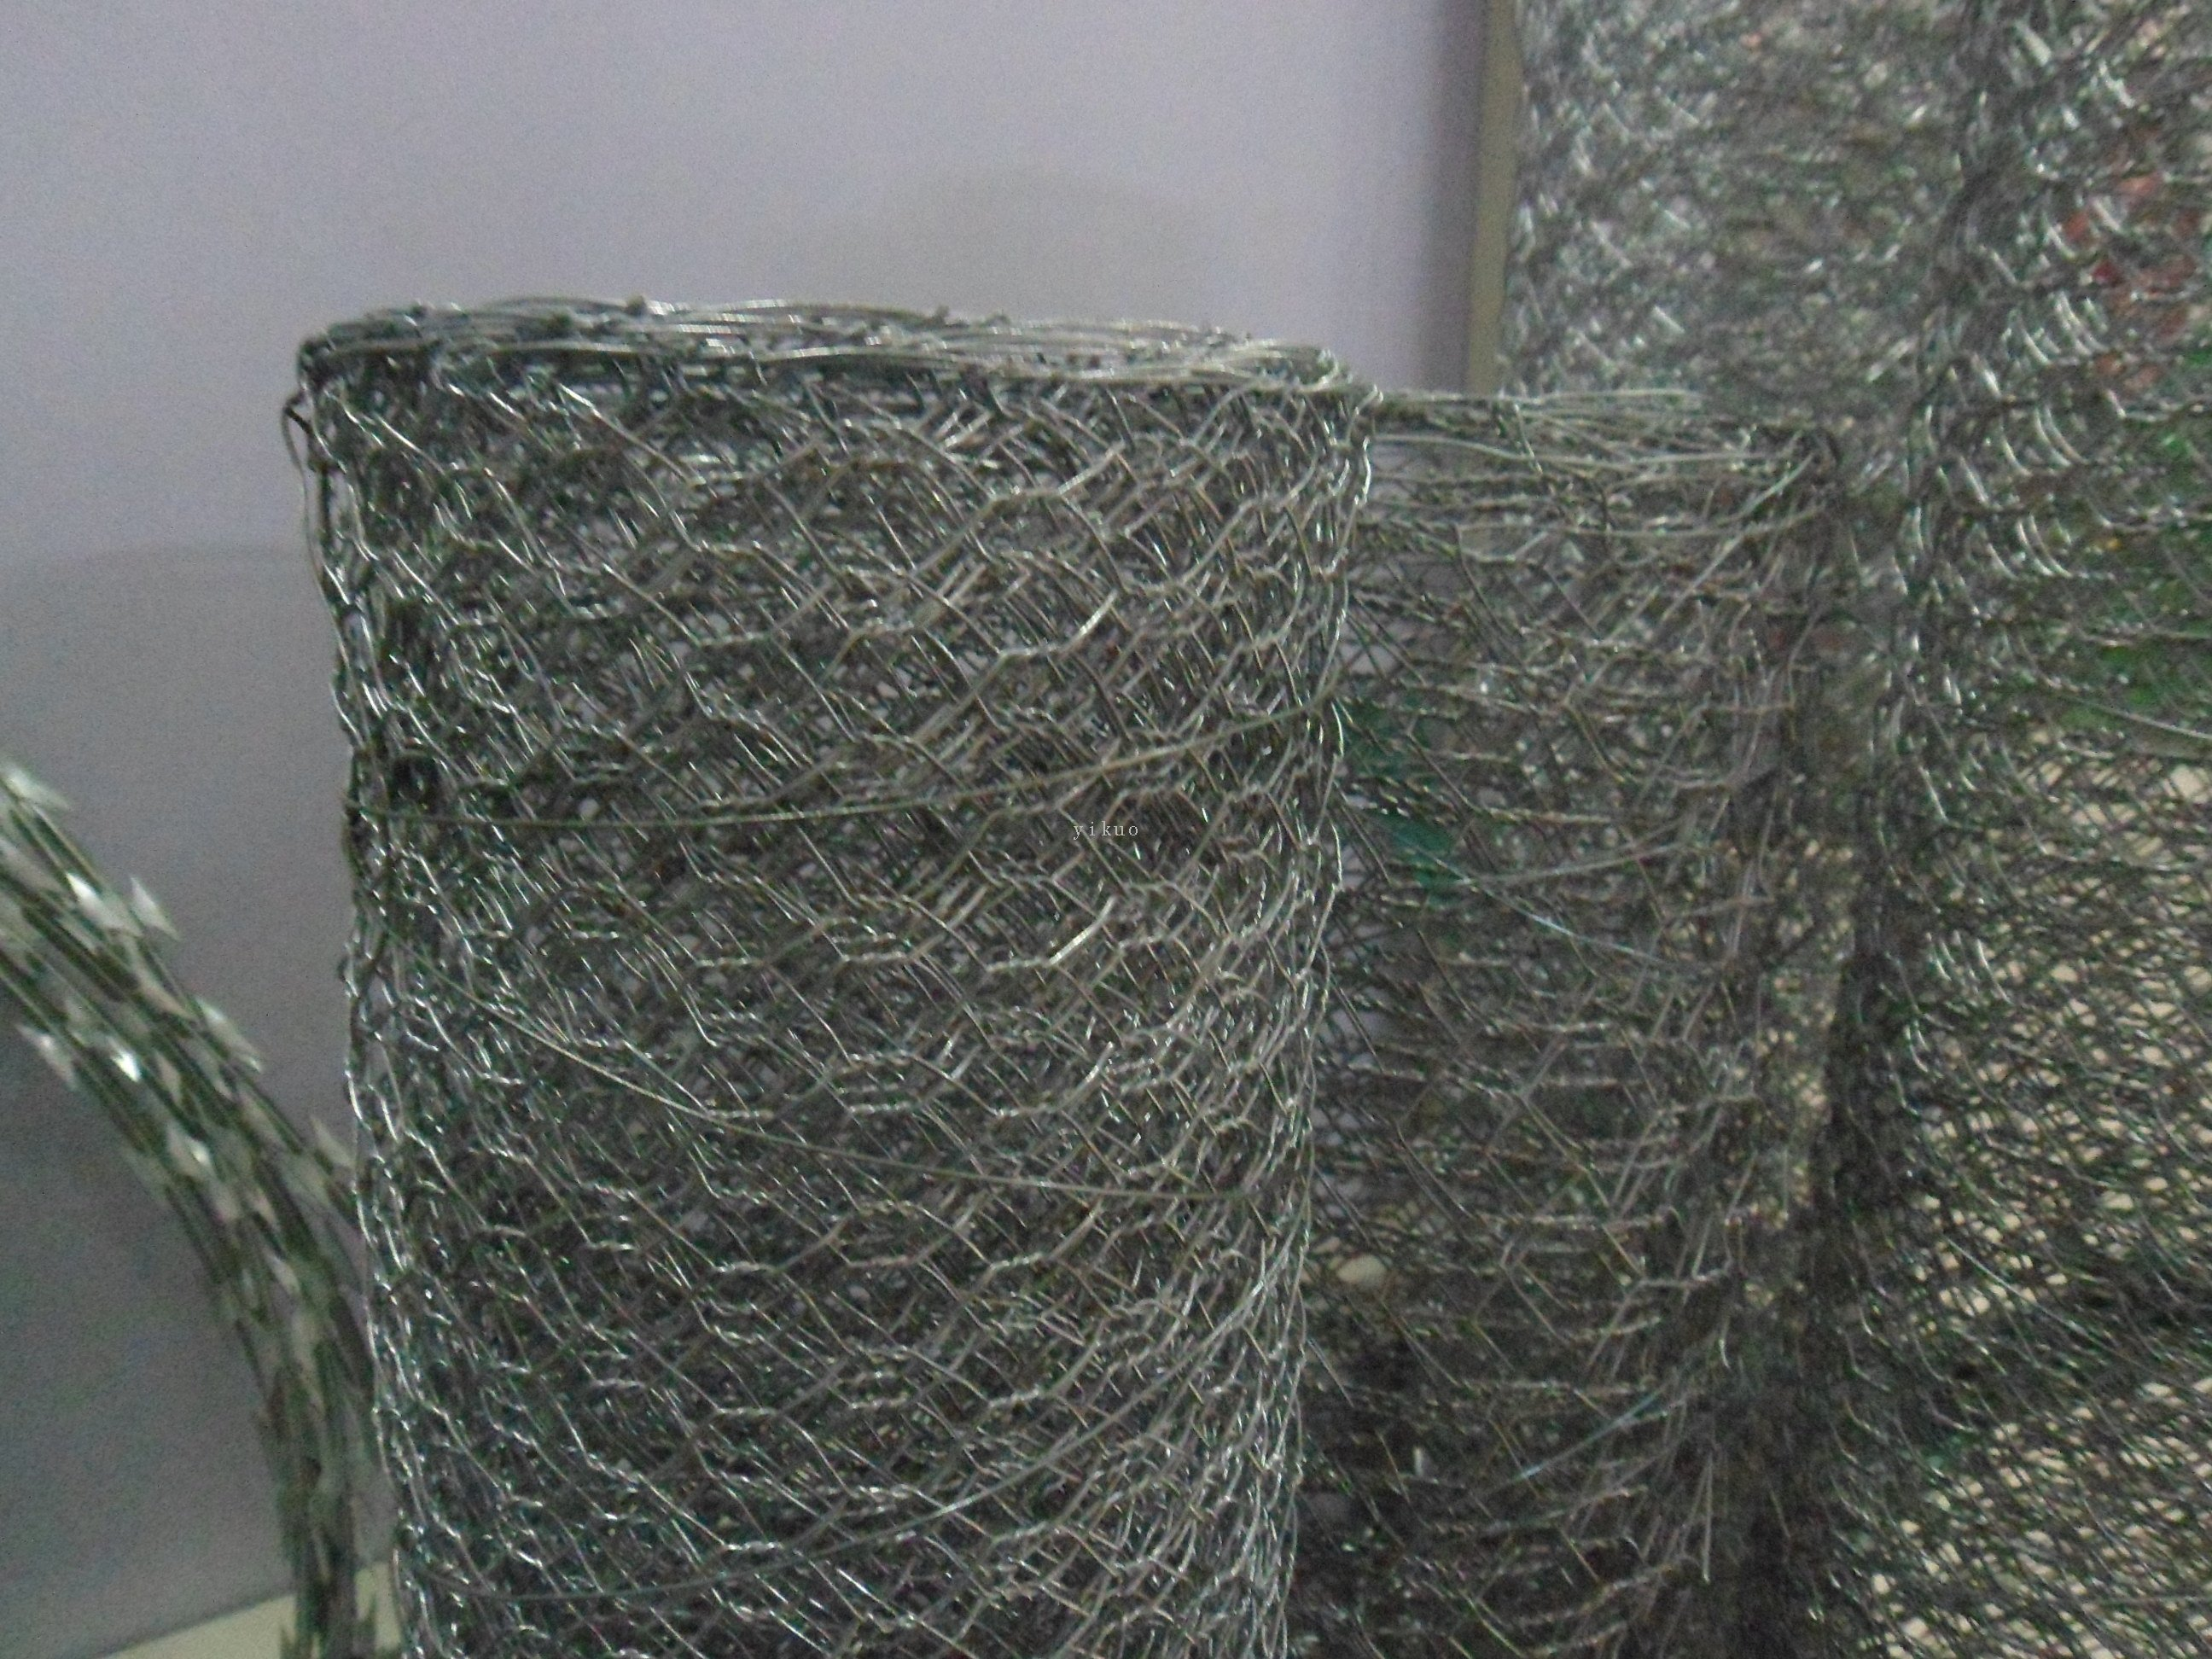 pl219581-galvanized iron hexagonal wire netting mesh for boiler cover or poultry fence in construction